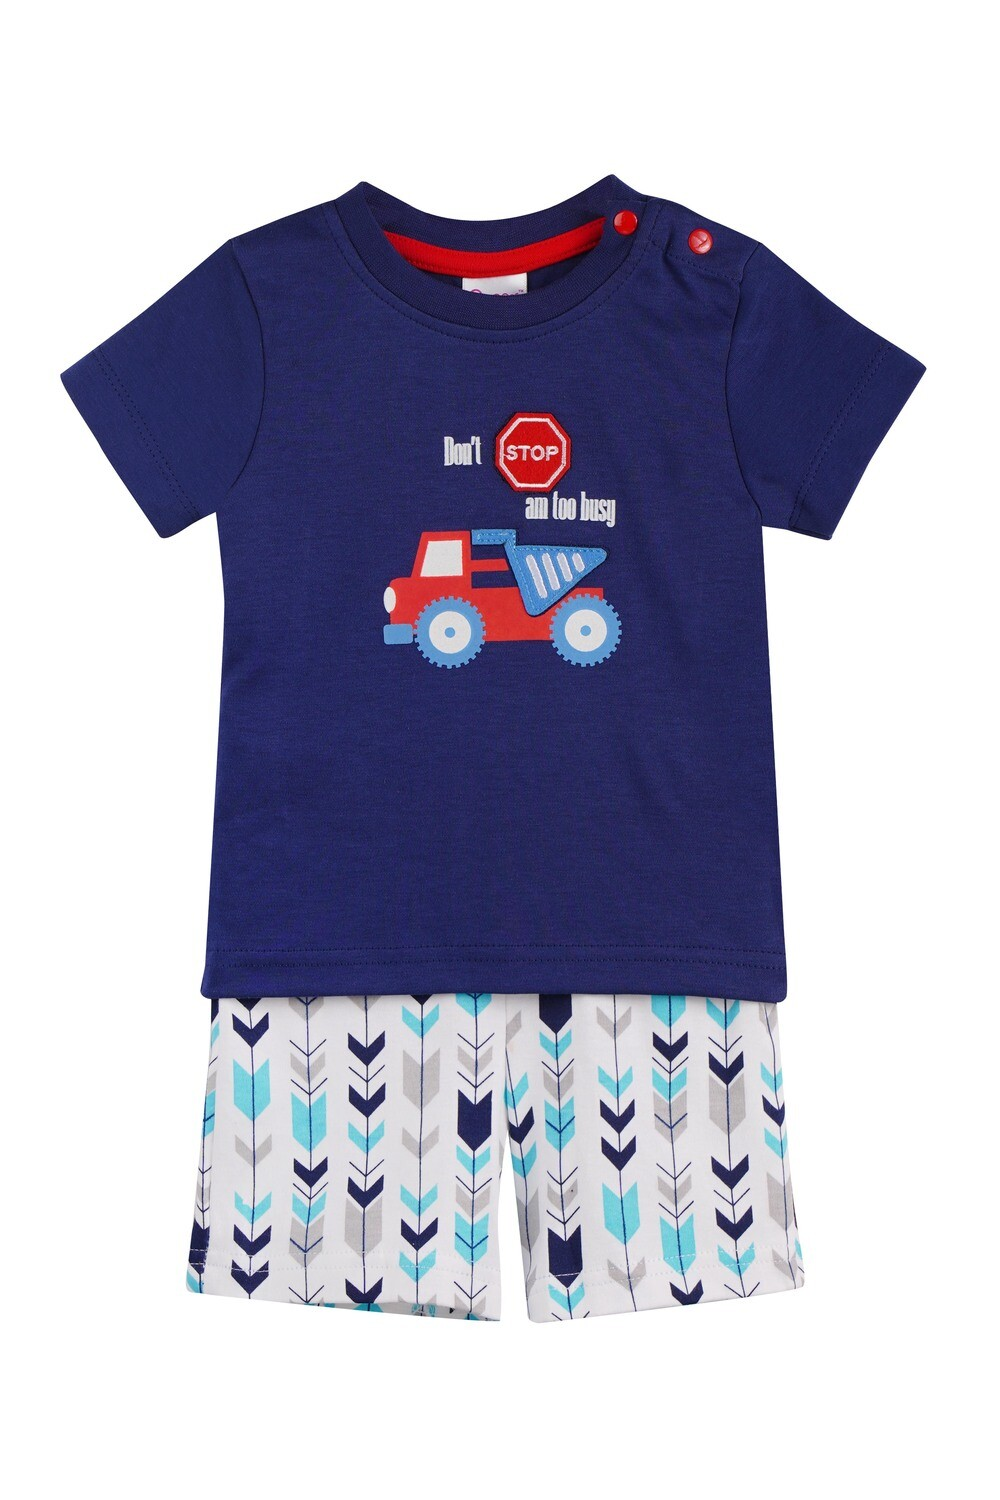 WARREN Navy Blue Top and Trouser Half Sleeves for Baby Boys